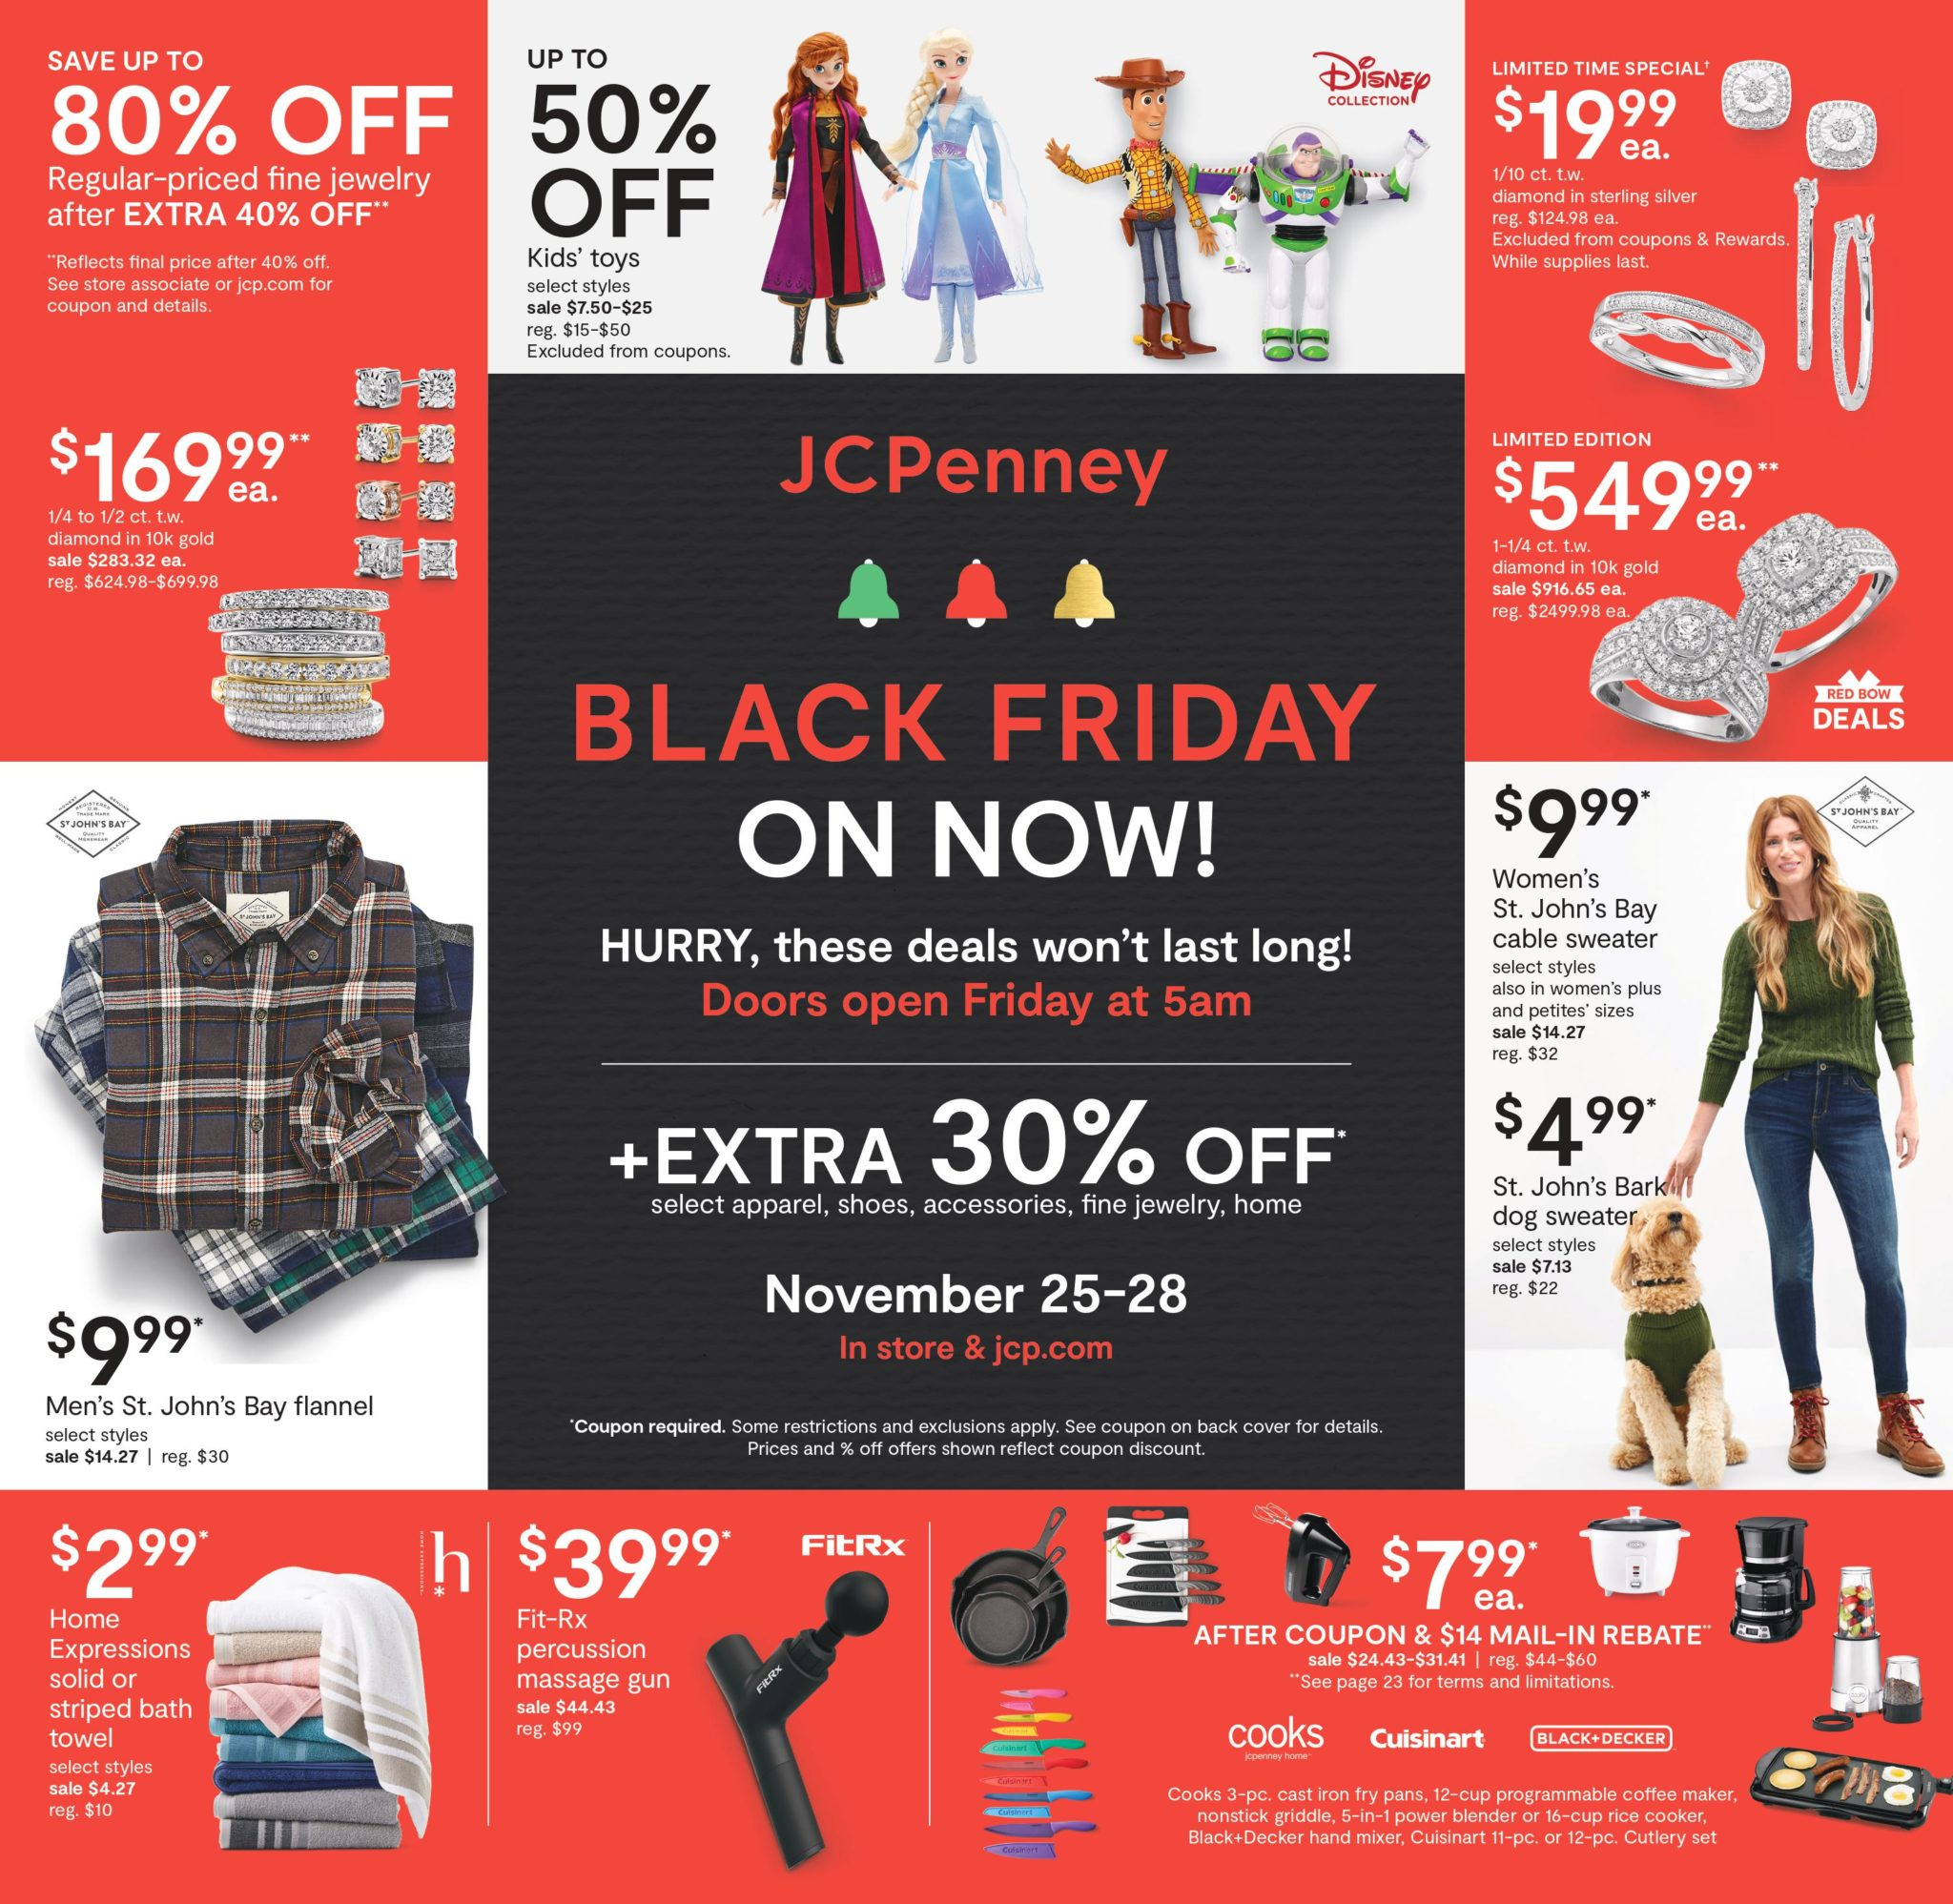 JCPenney Black Friday Sale Ad 2020